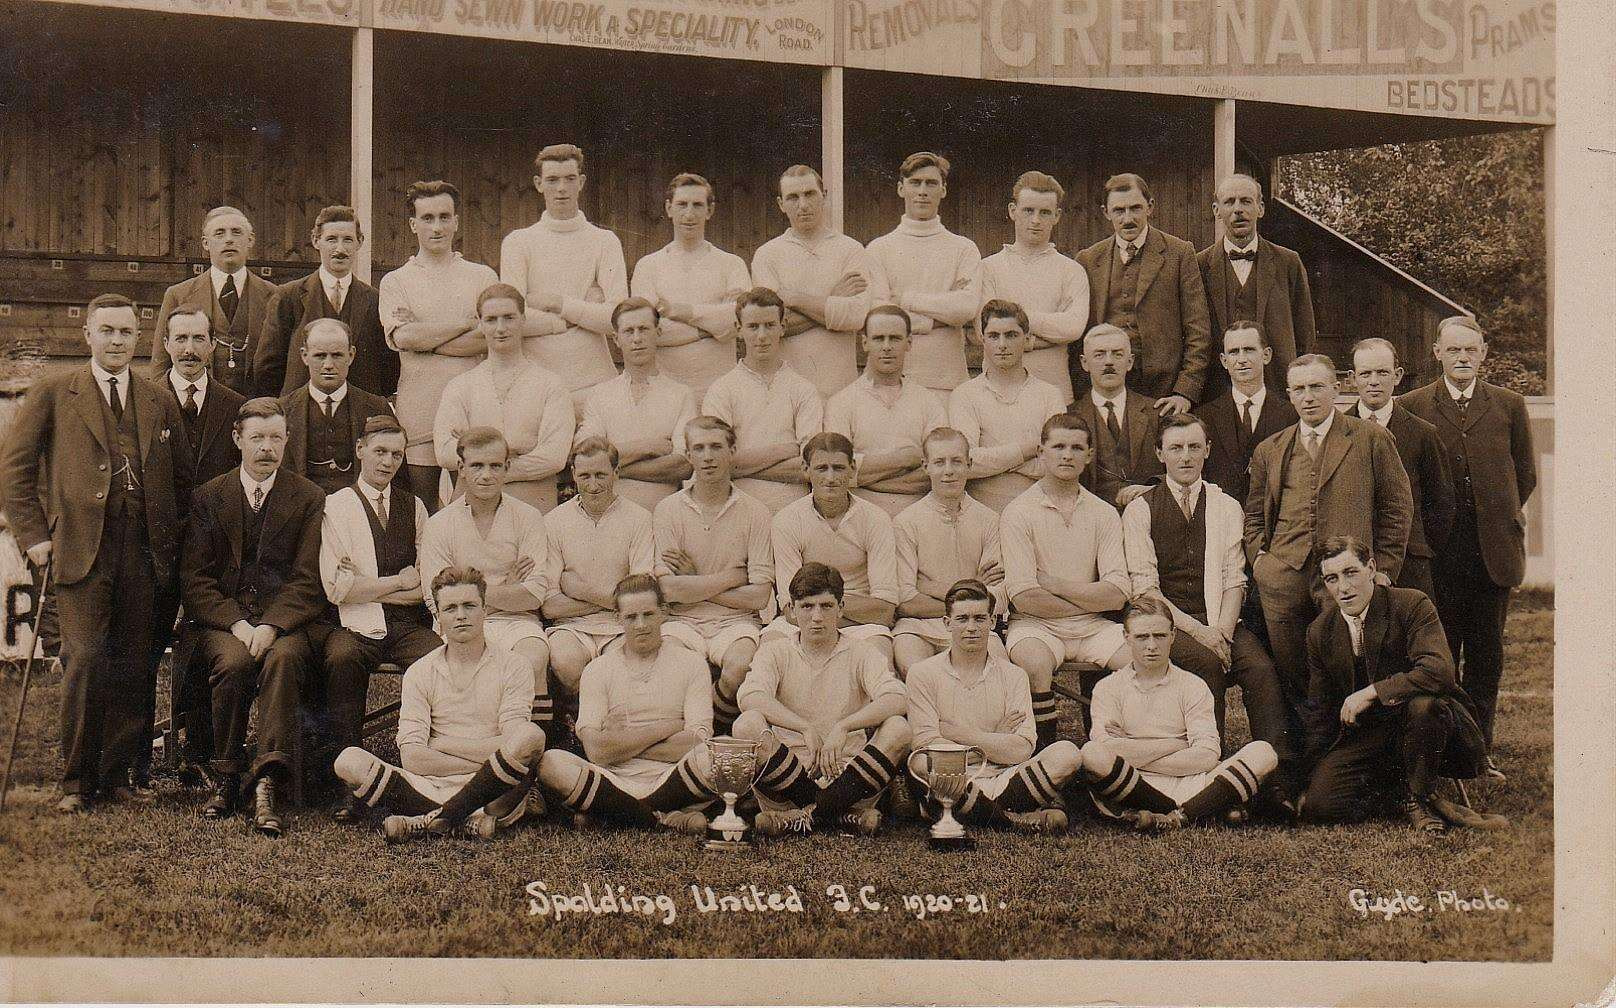 The 1920-21 team with the Peterborough Junior Trophy and The Victory Cup. The photograph was taken in front of the original grandstand at the Black Swan (Sir Halley Stewart Playing Field) by renowned Spalding photographer Gyde whose studio was situated in Gore Lane.